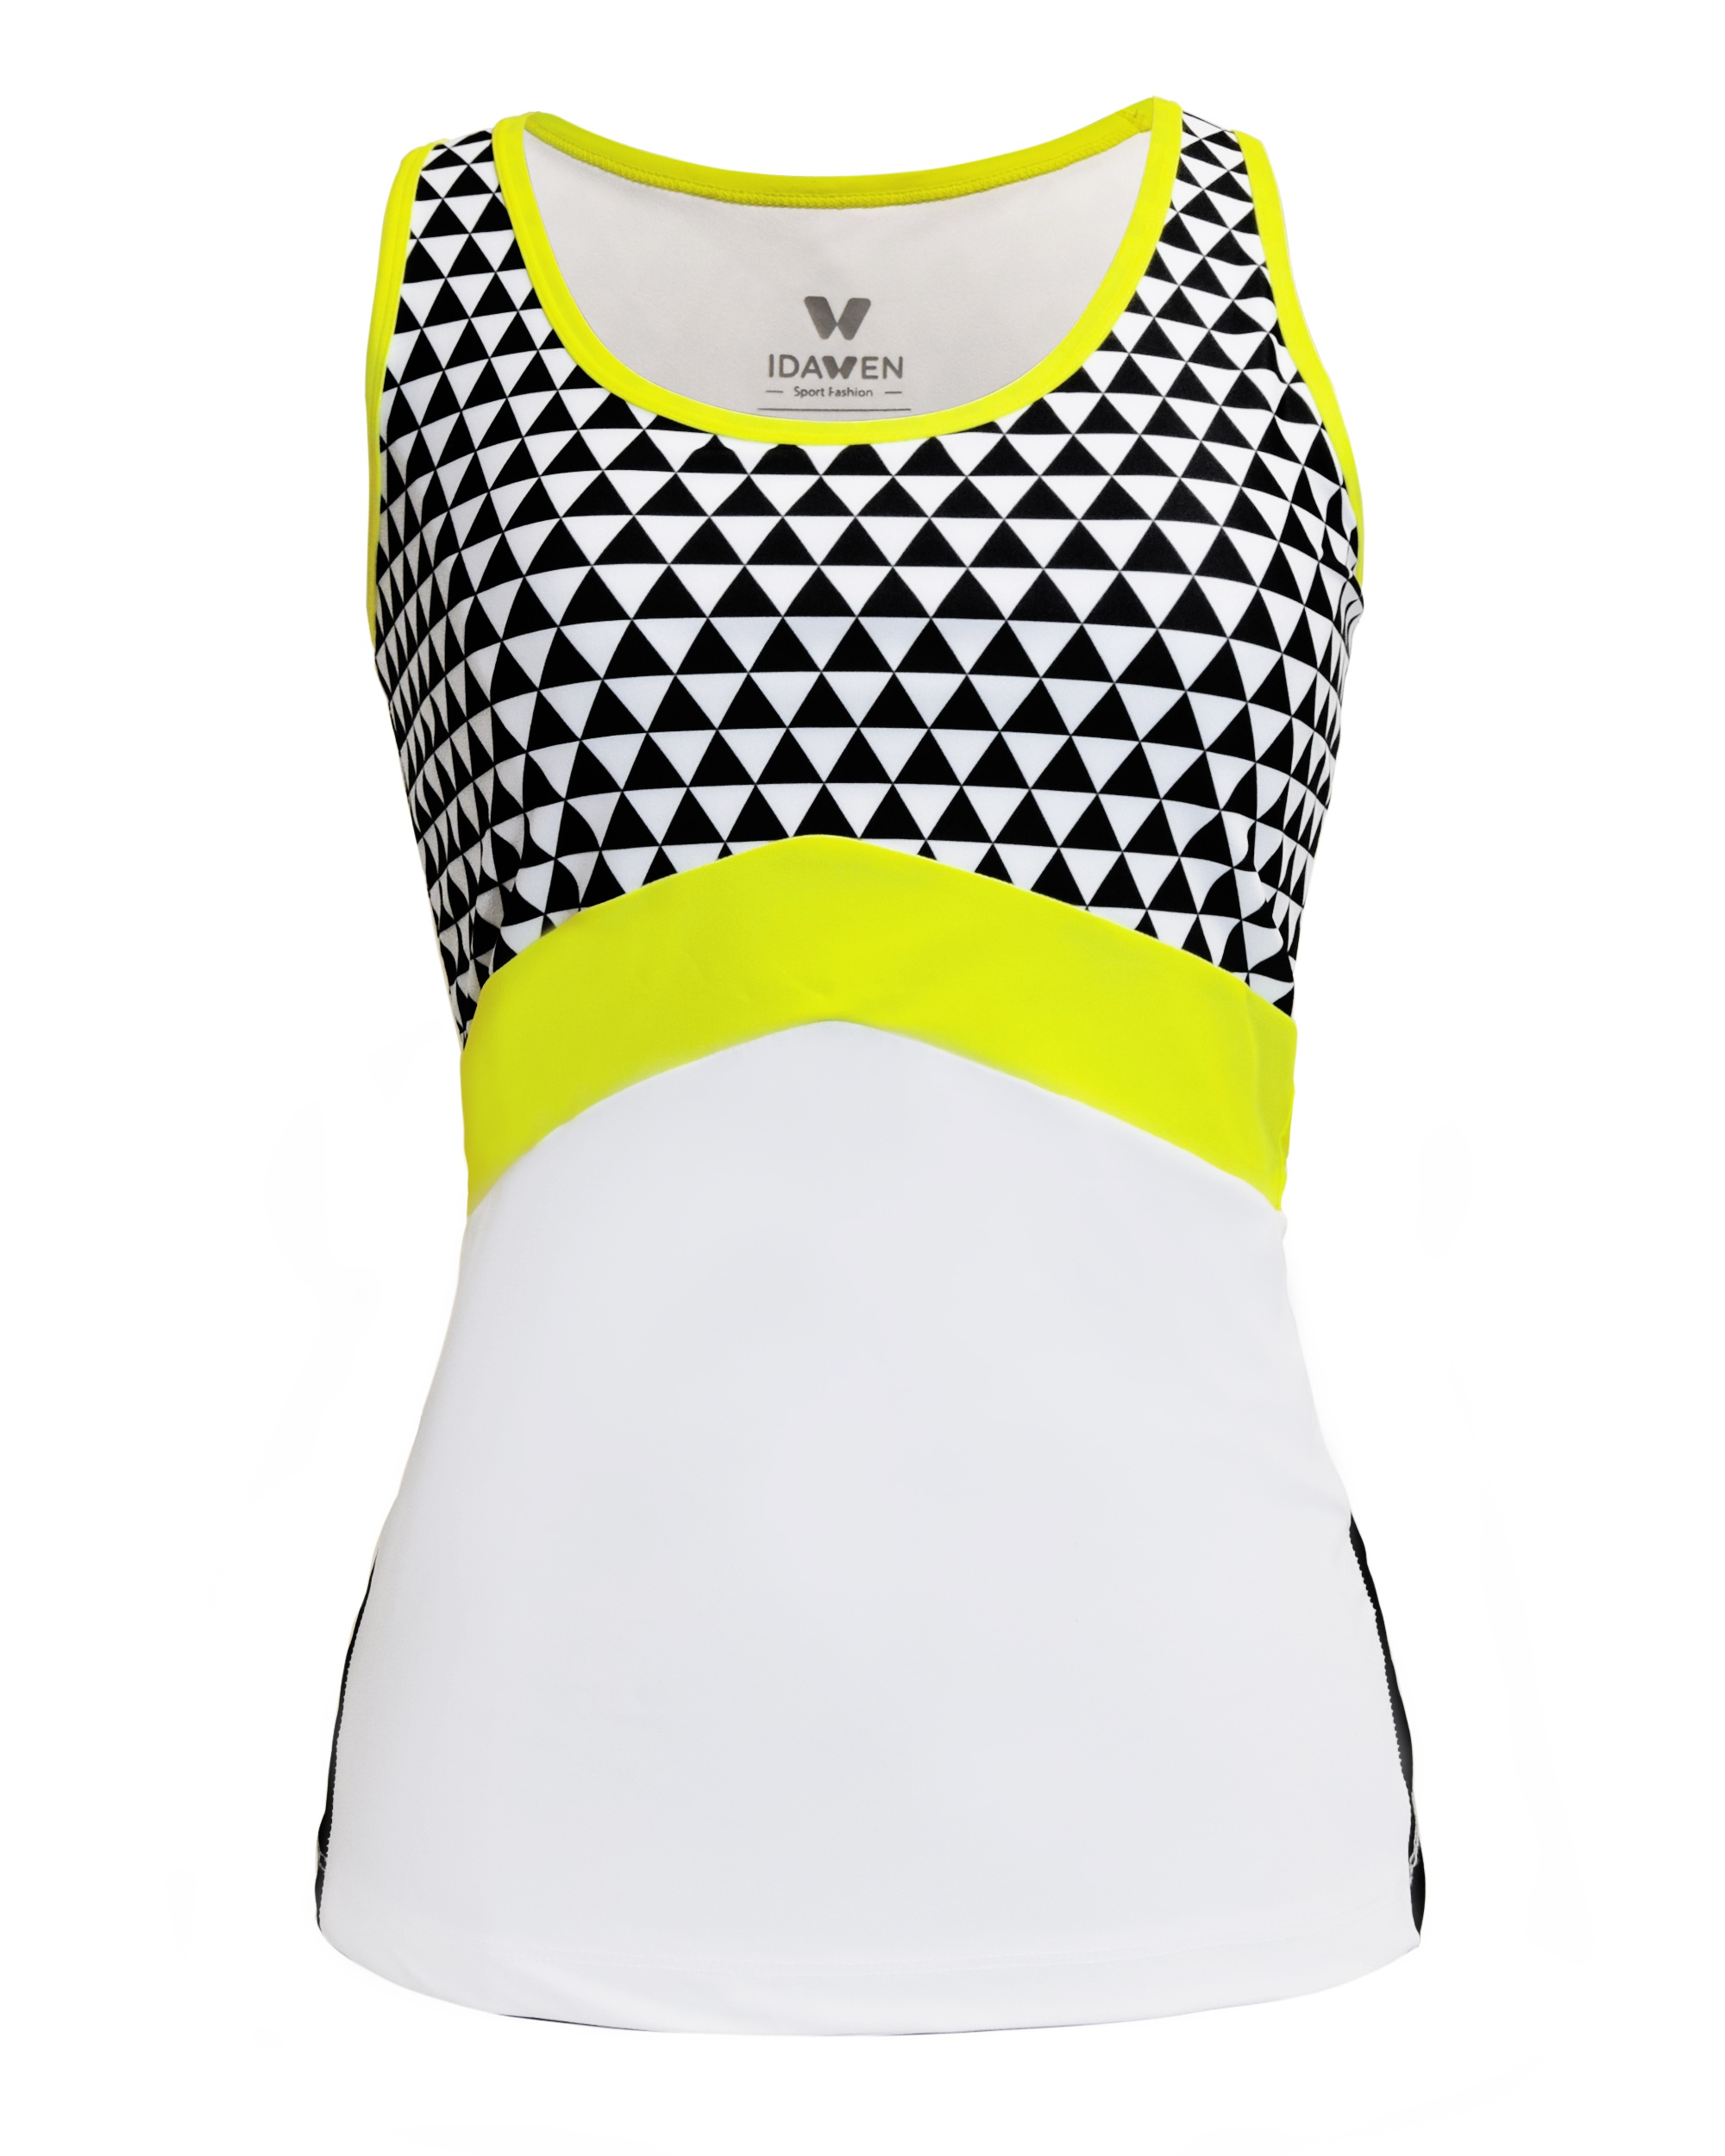 SPORTS TOP WHITE AND BLACK WOMAN SPORTS BRAS AND TOPS CE IDAWEN